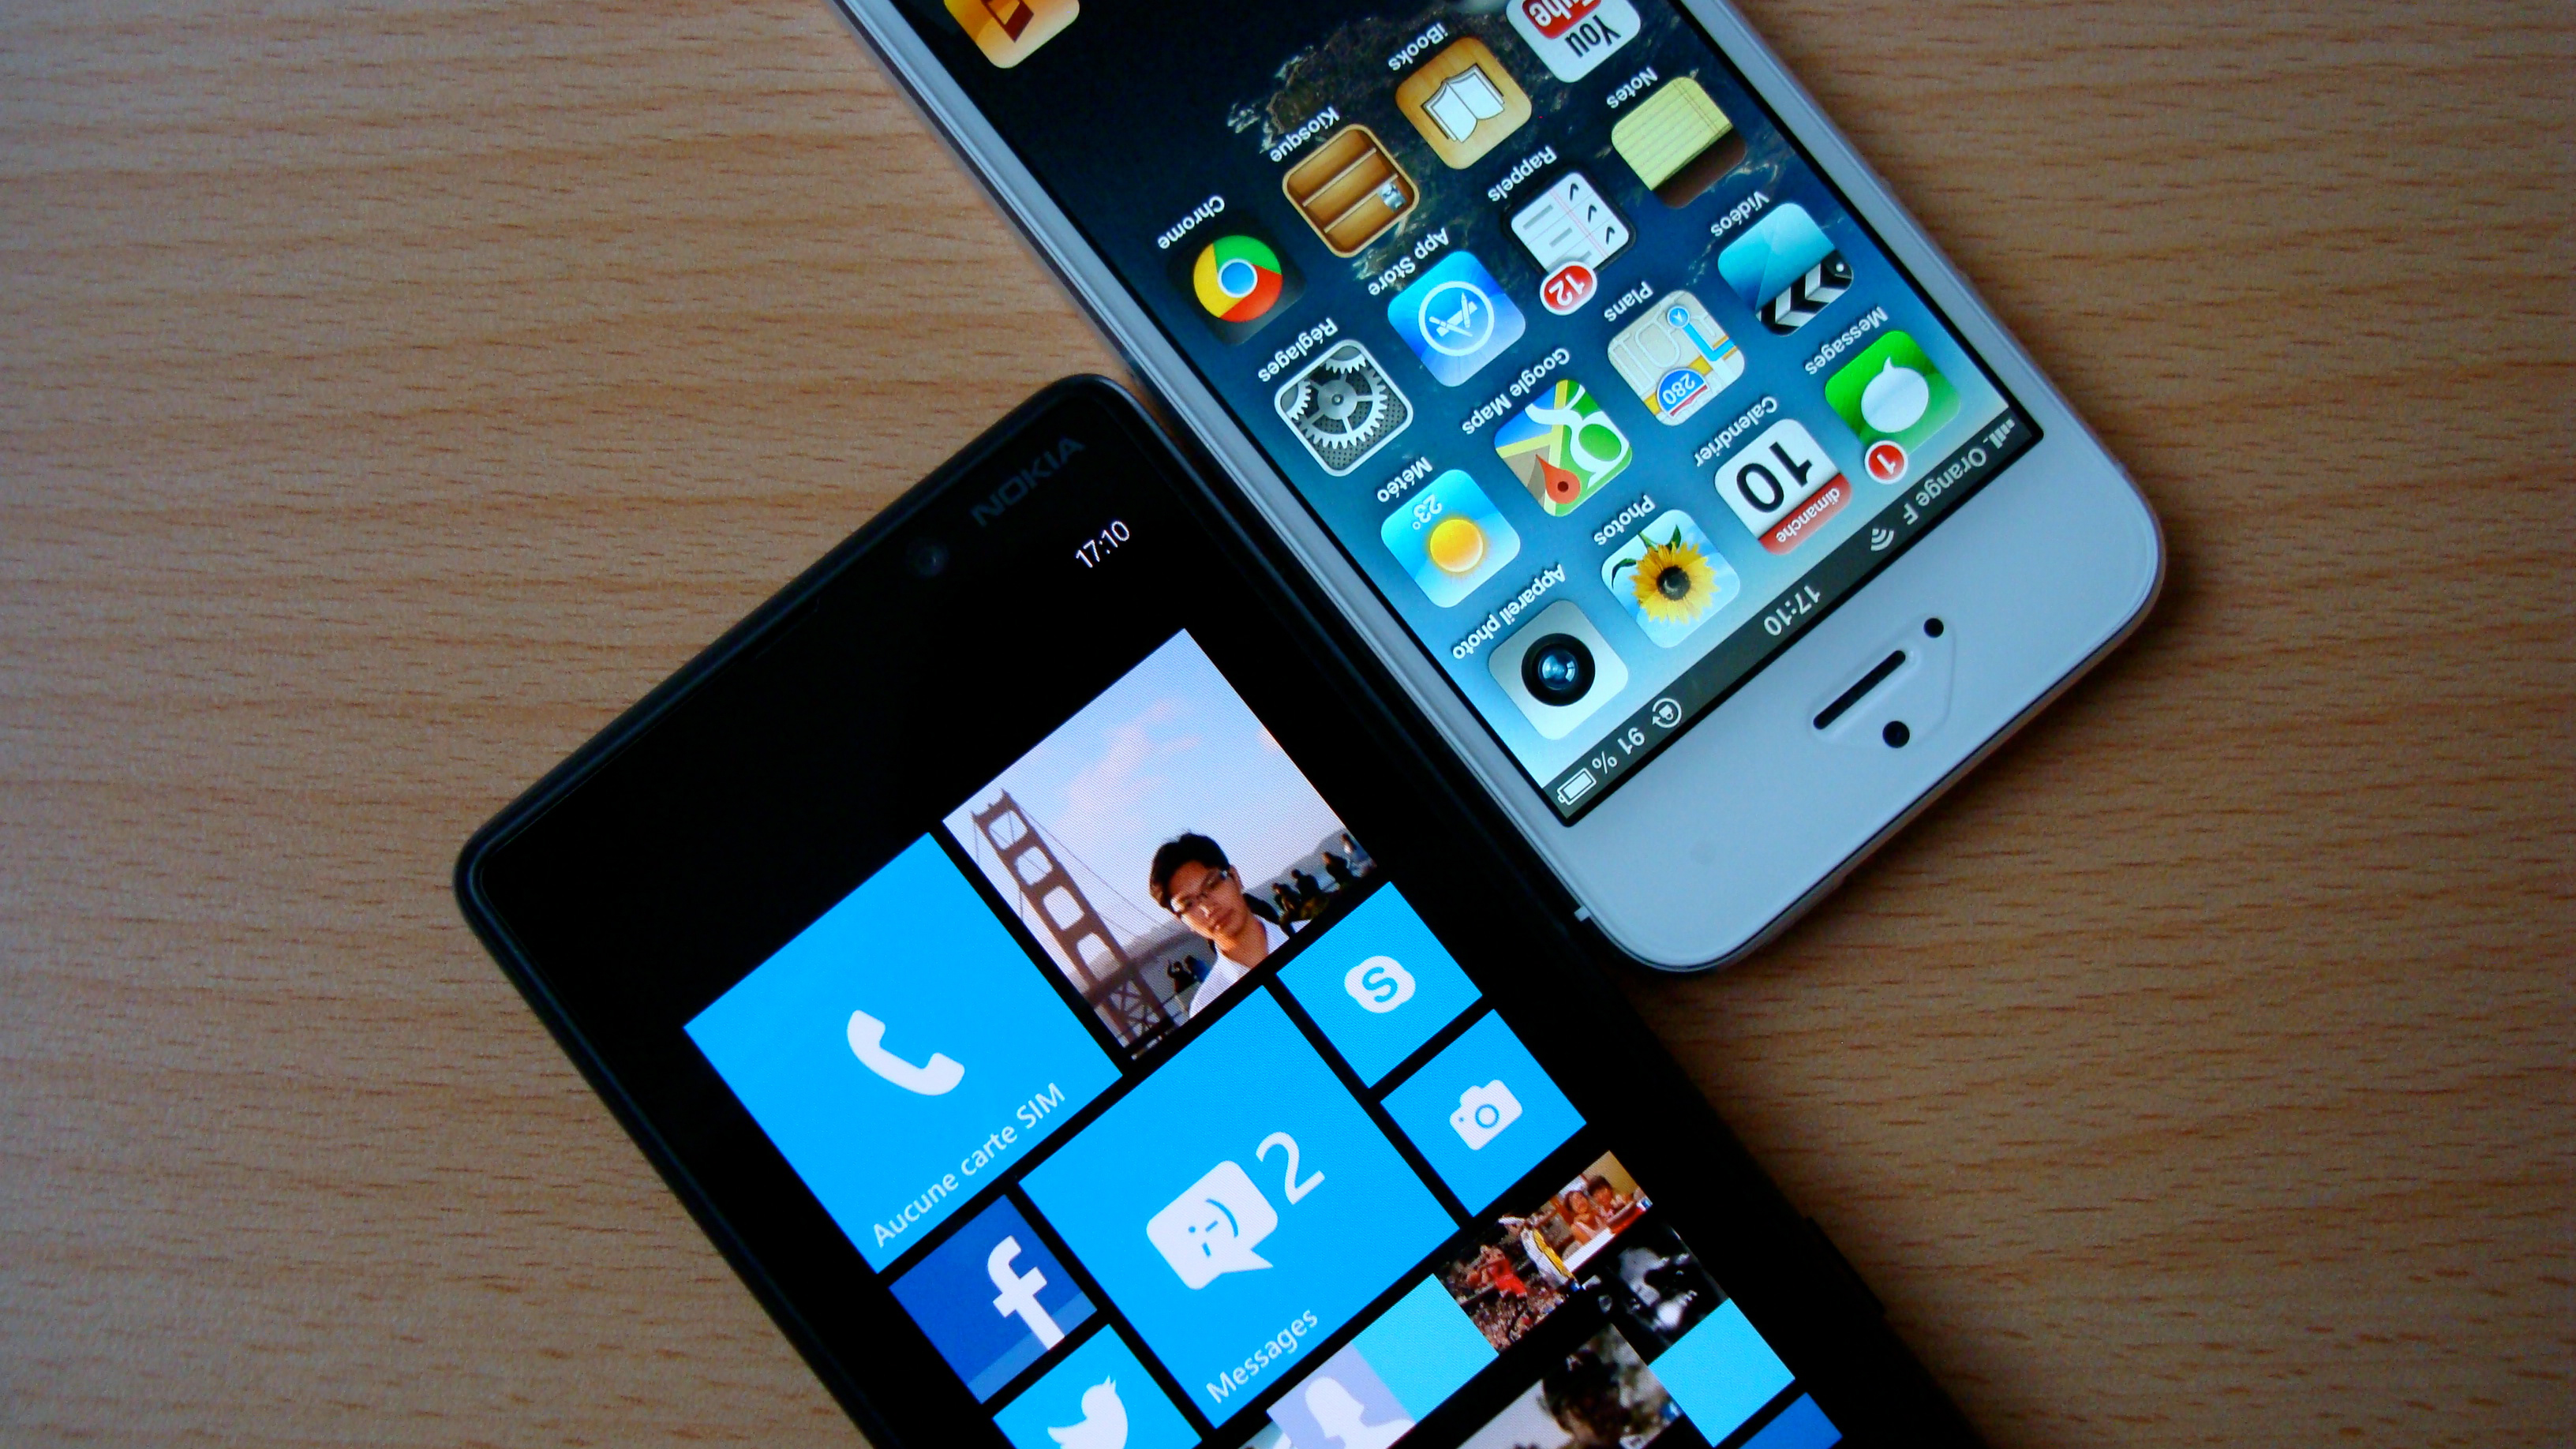 Failed to switch: 2 semaines avec un Windows Phone-0